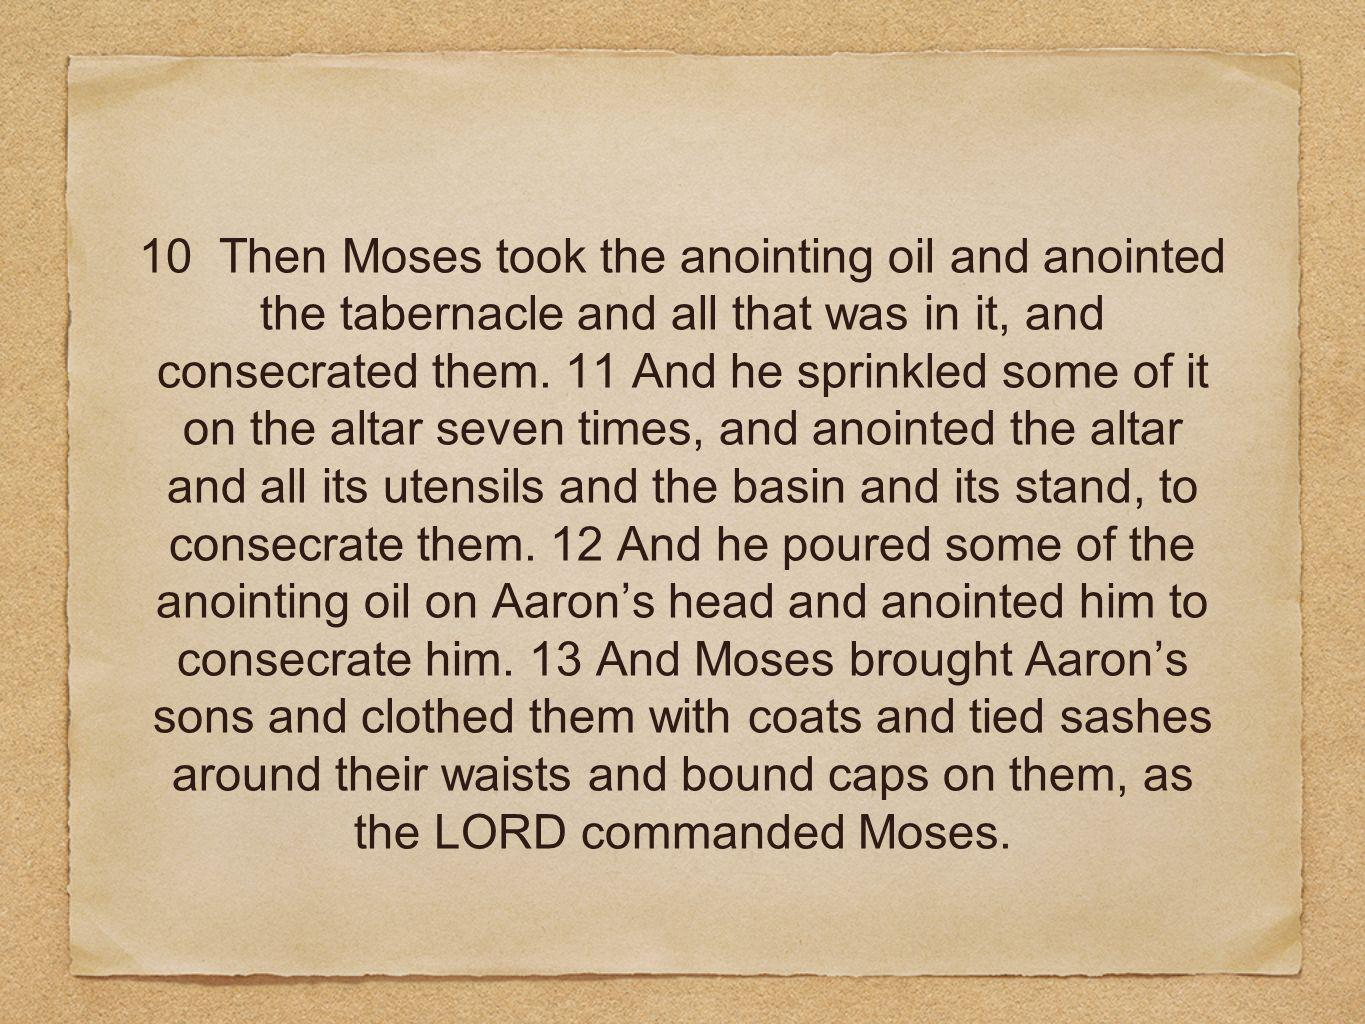 10 Then Moses took the anointing oil and anointed the tabernacle and all that was in it, and consecrated them.